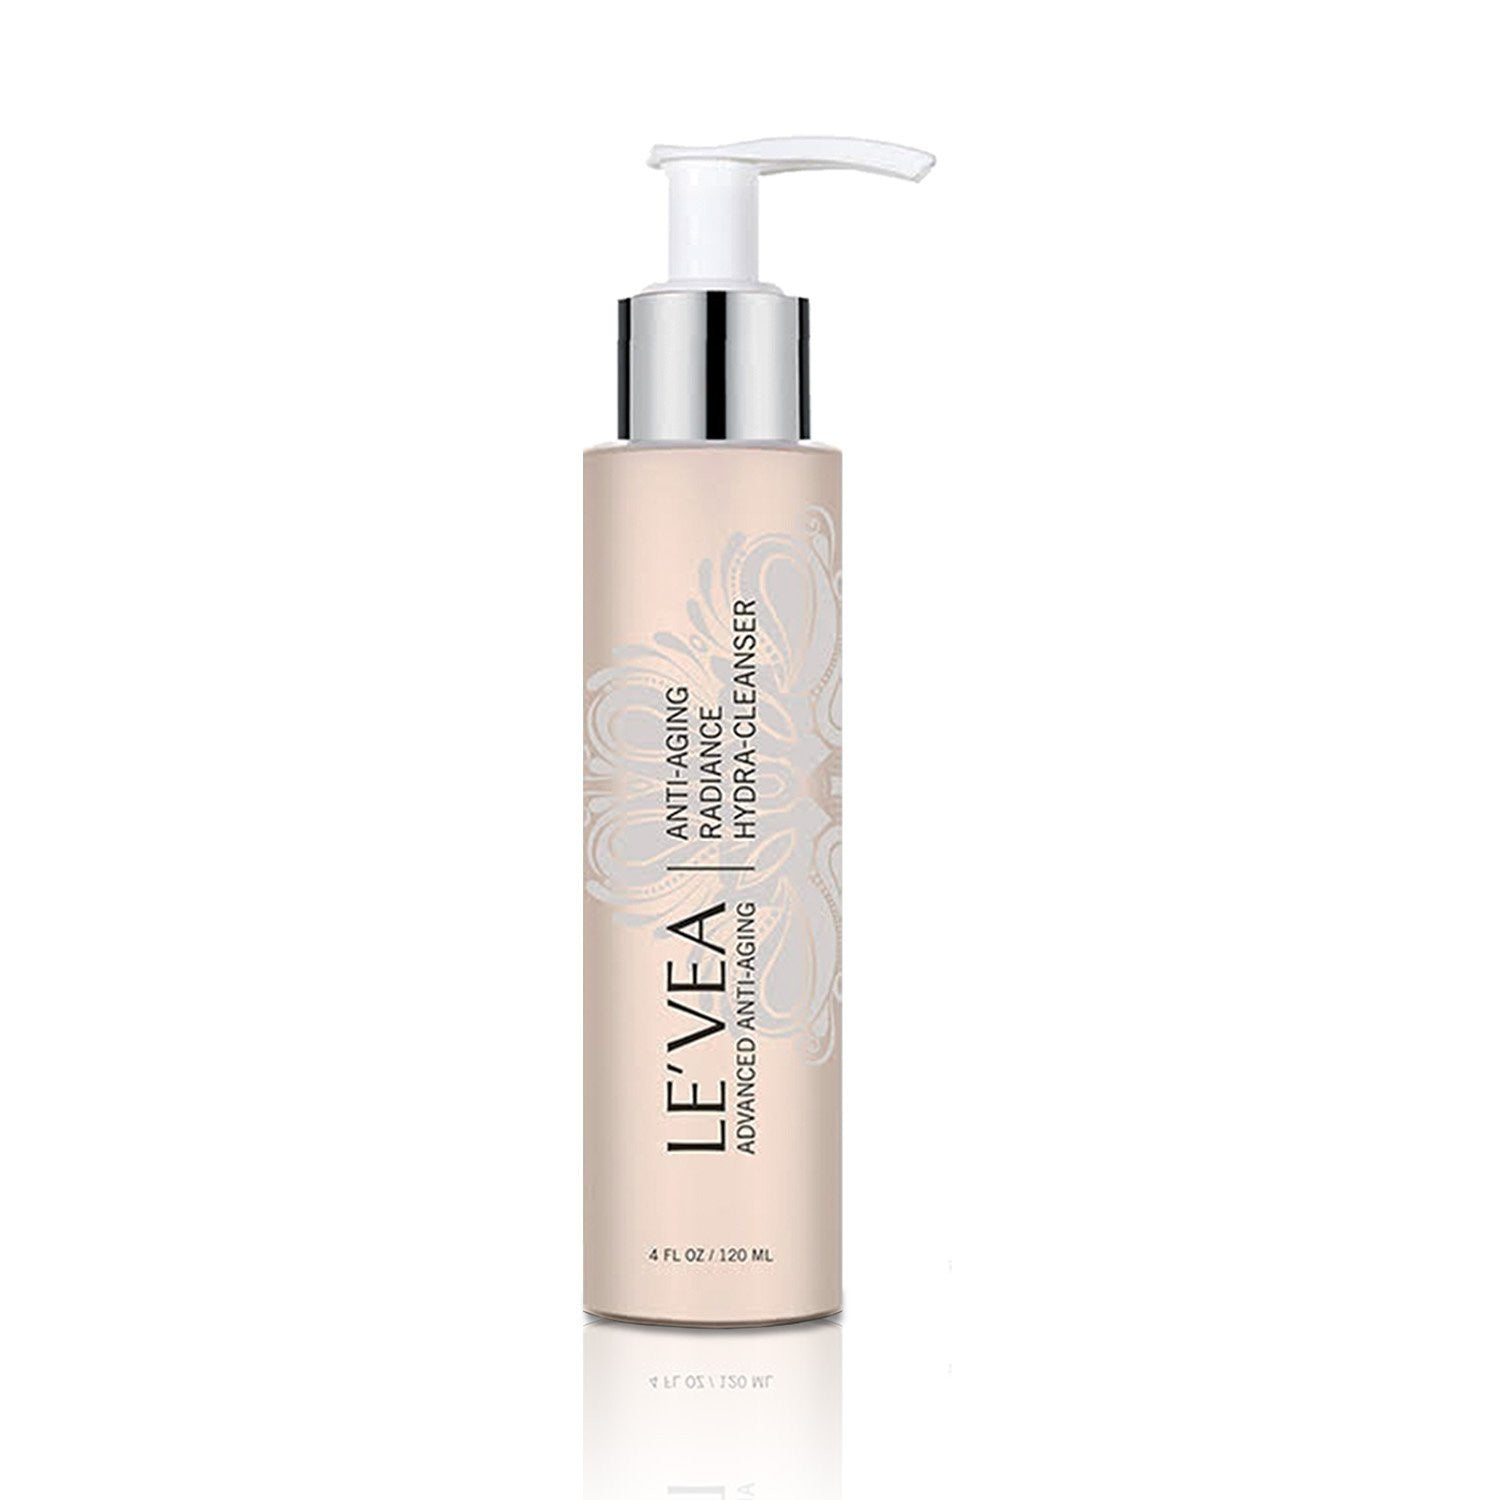 hydrating face cleanser